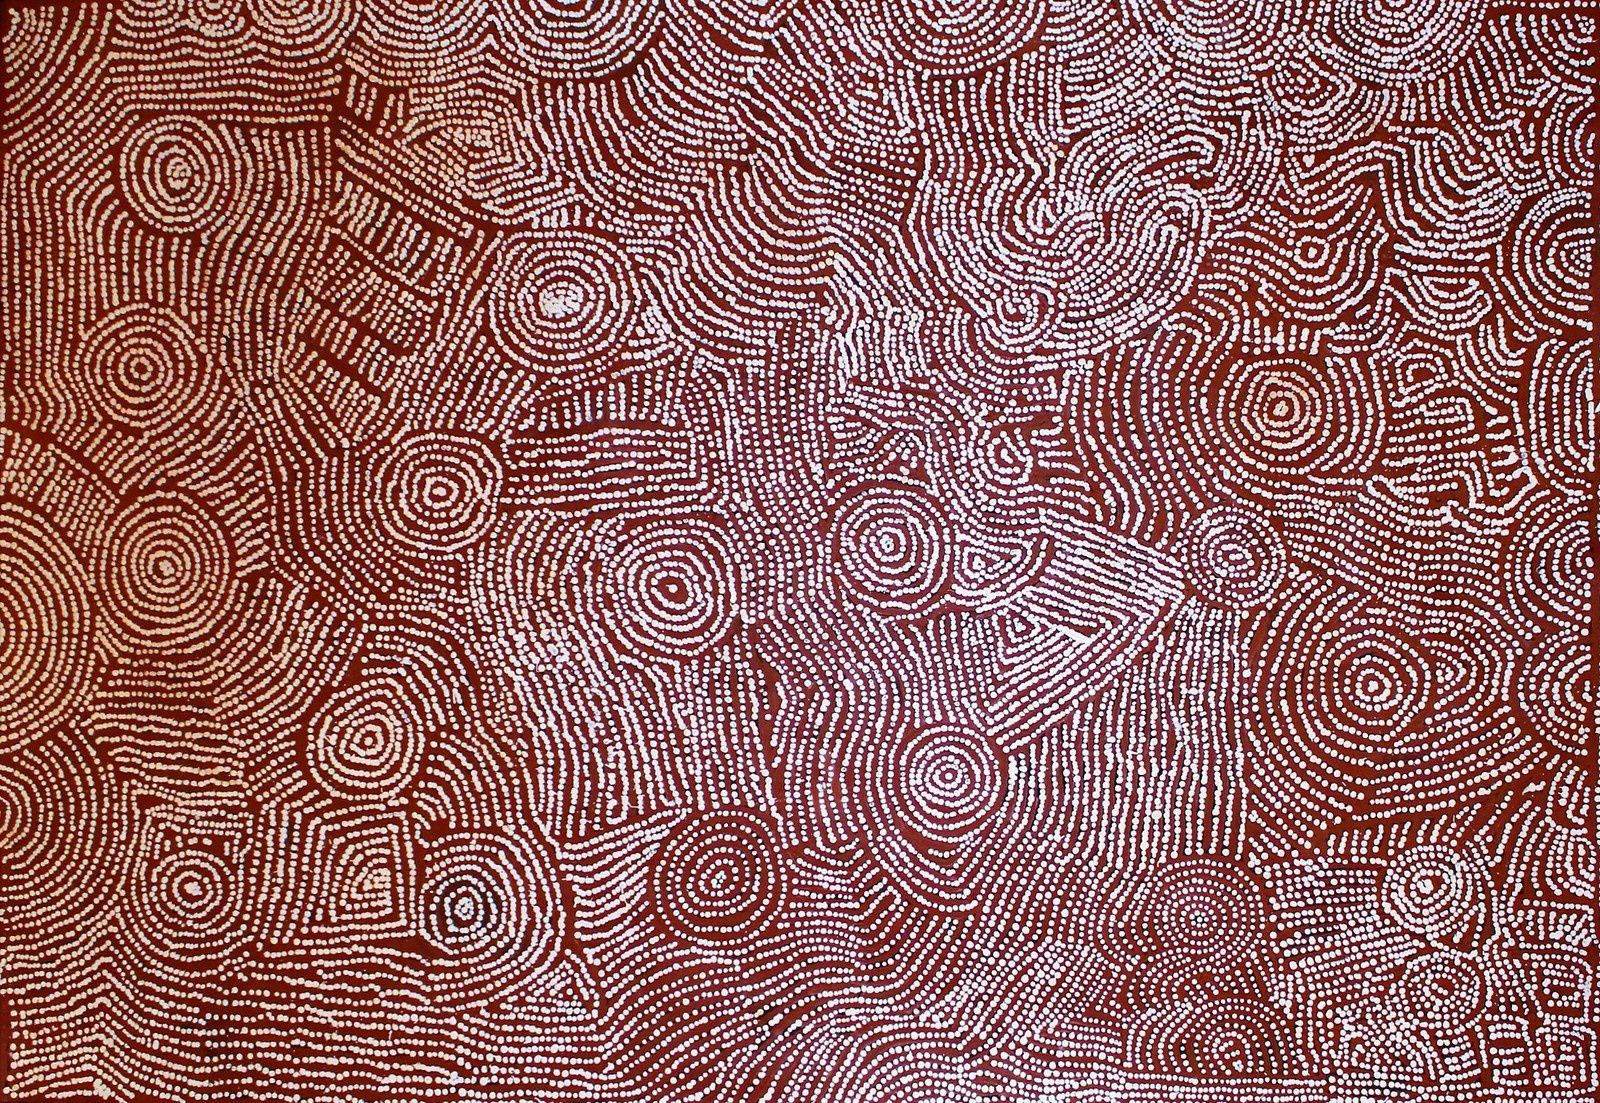 Maisie Campbell Napaljarri, Ngurra, my country. 125x180 cm, acrylique sur lin